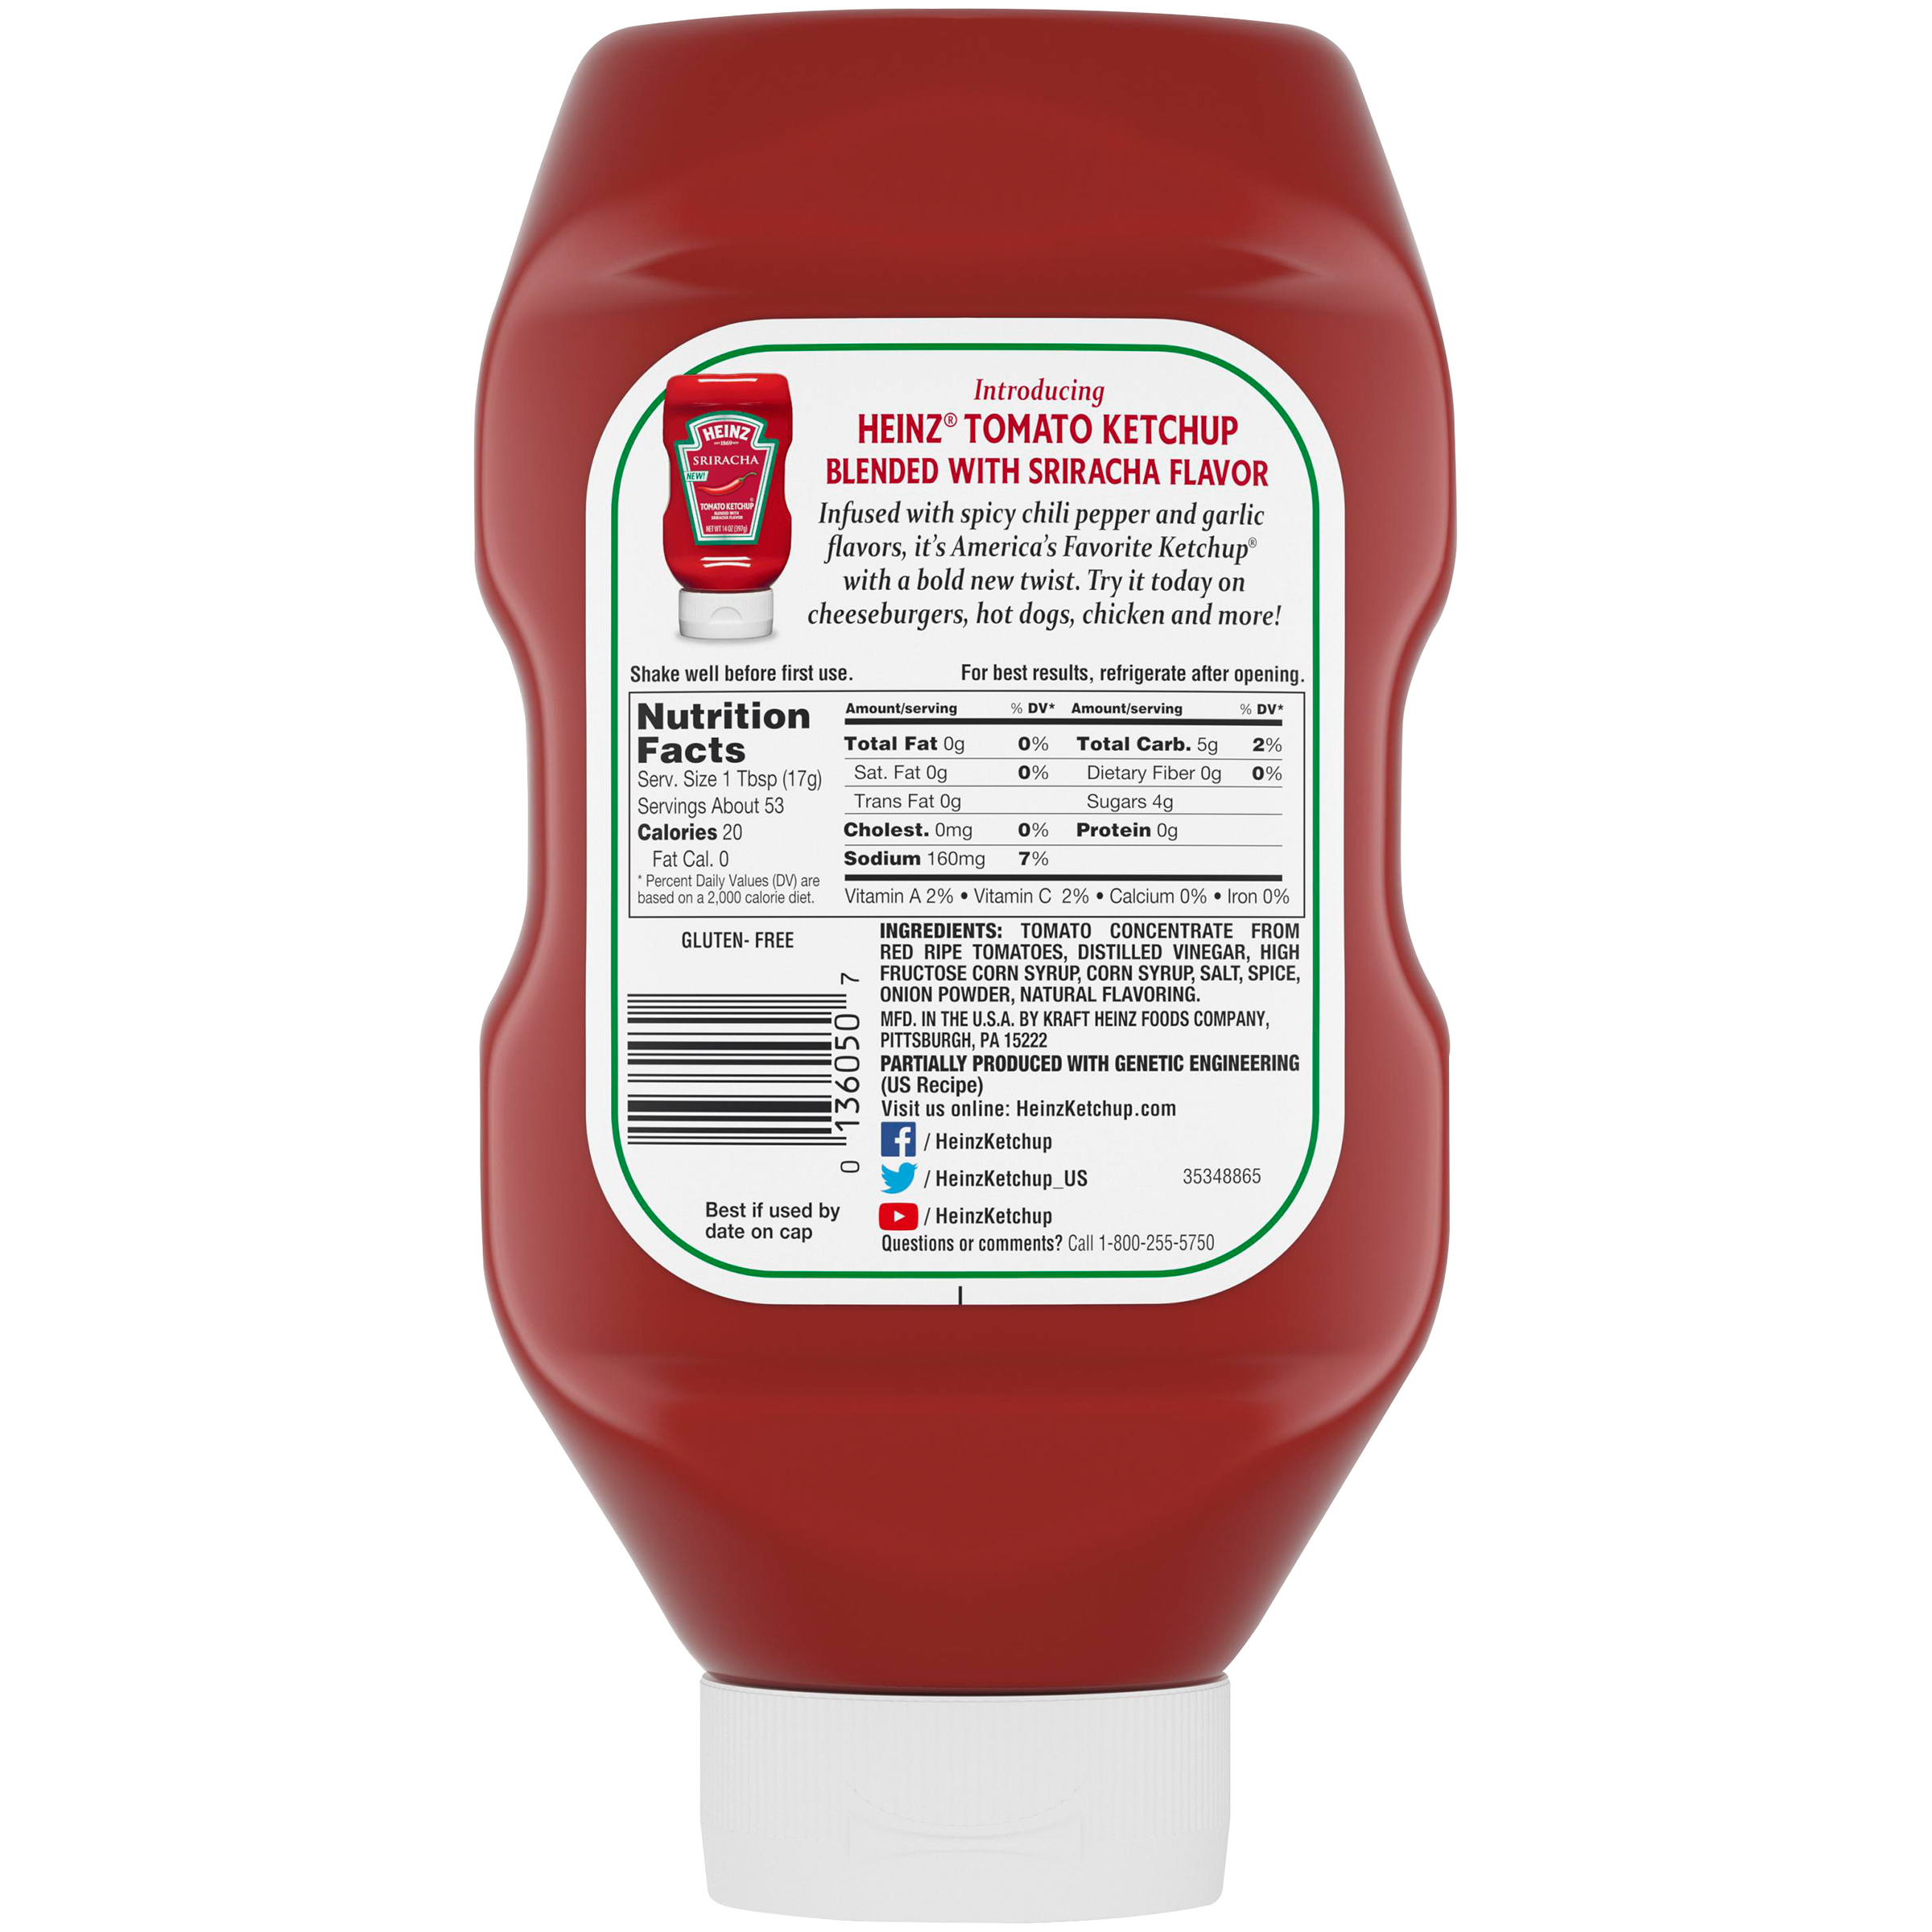 Heinz Tomato Ketchup 32 oz Bottle